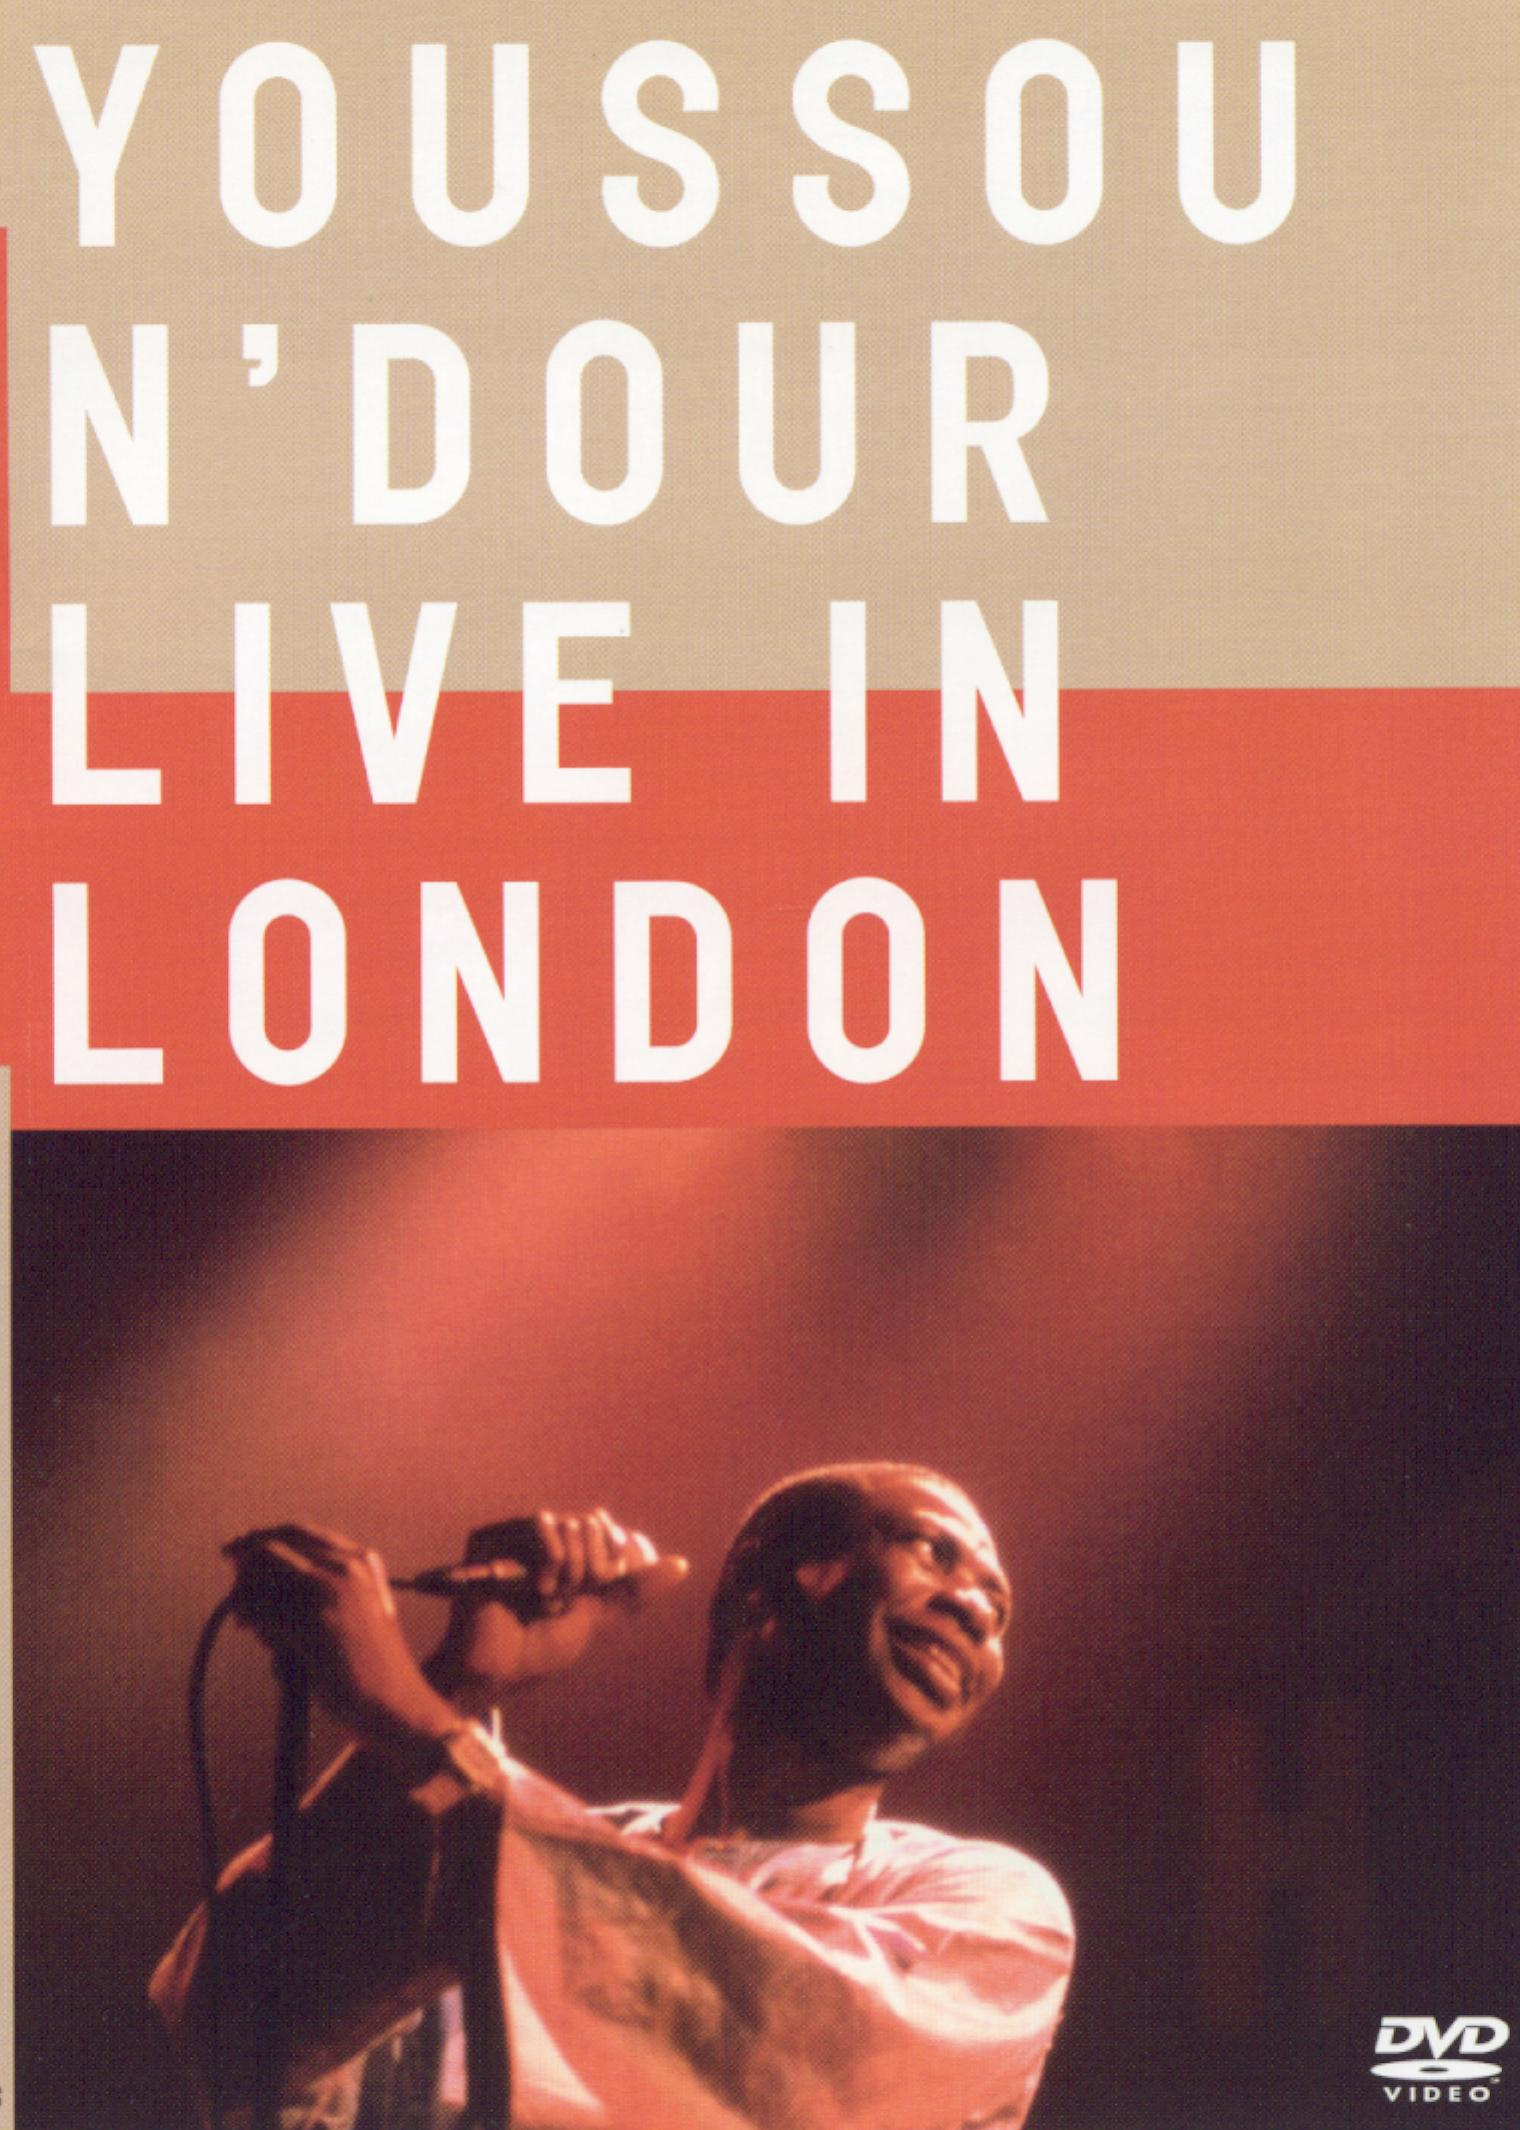 Youssou N'Dour: Live in London